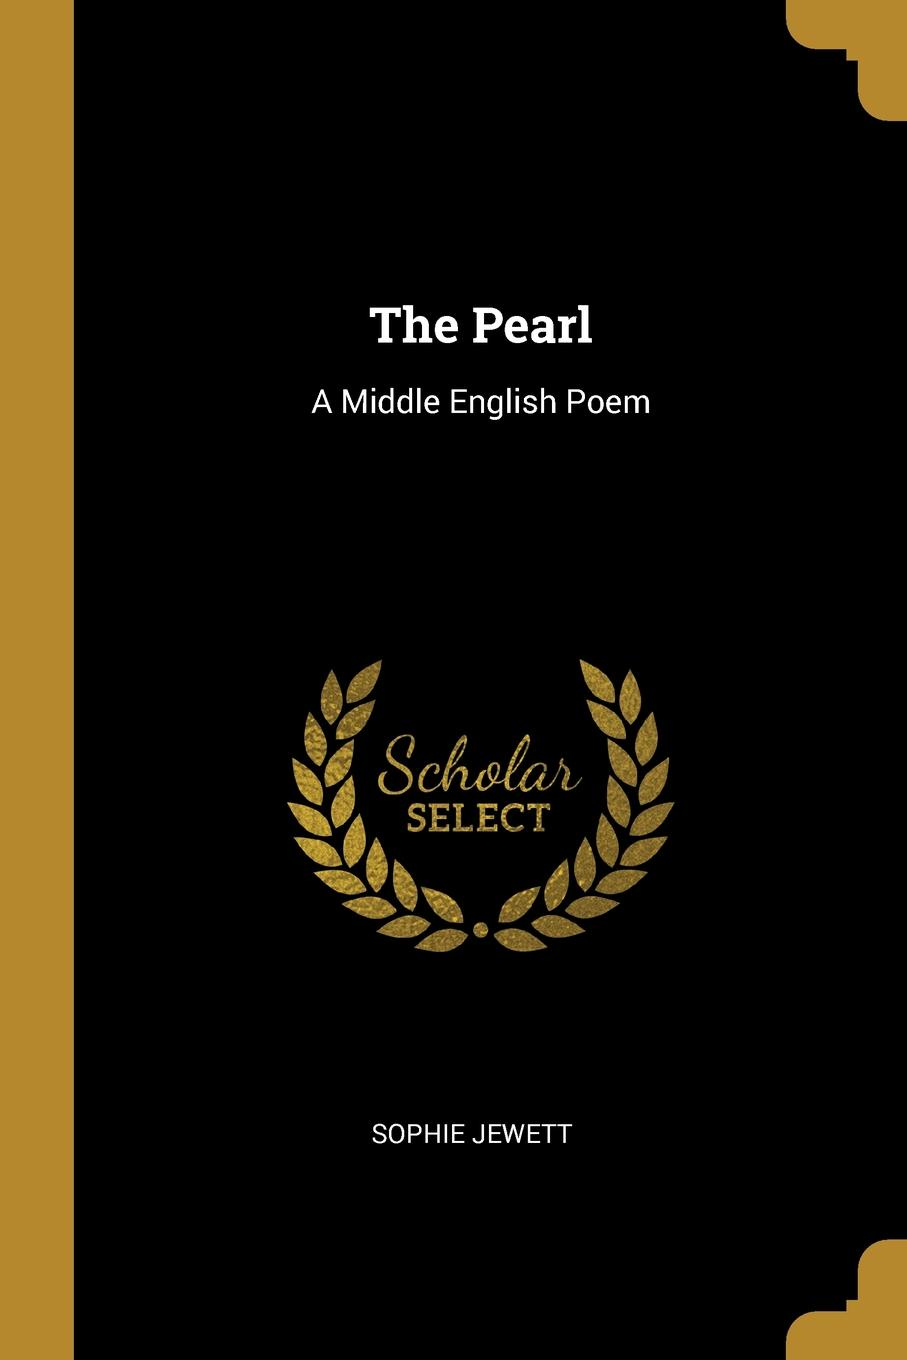 Sophie Jewett The Pearl. A Middle English Poem